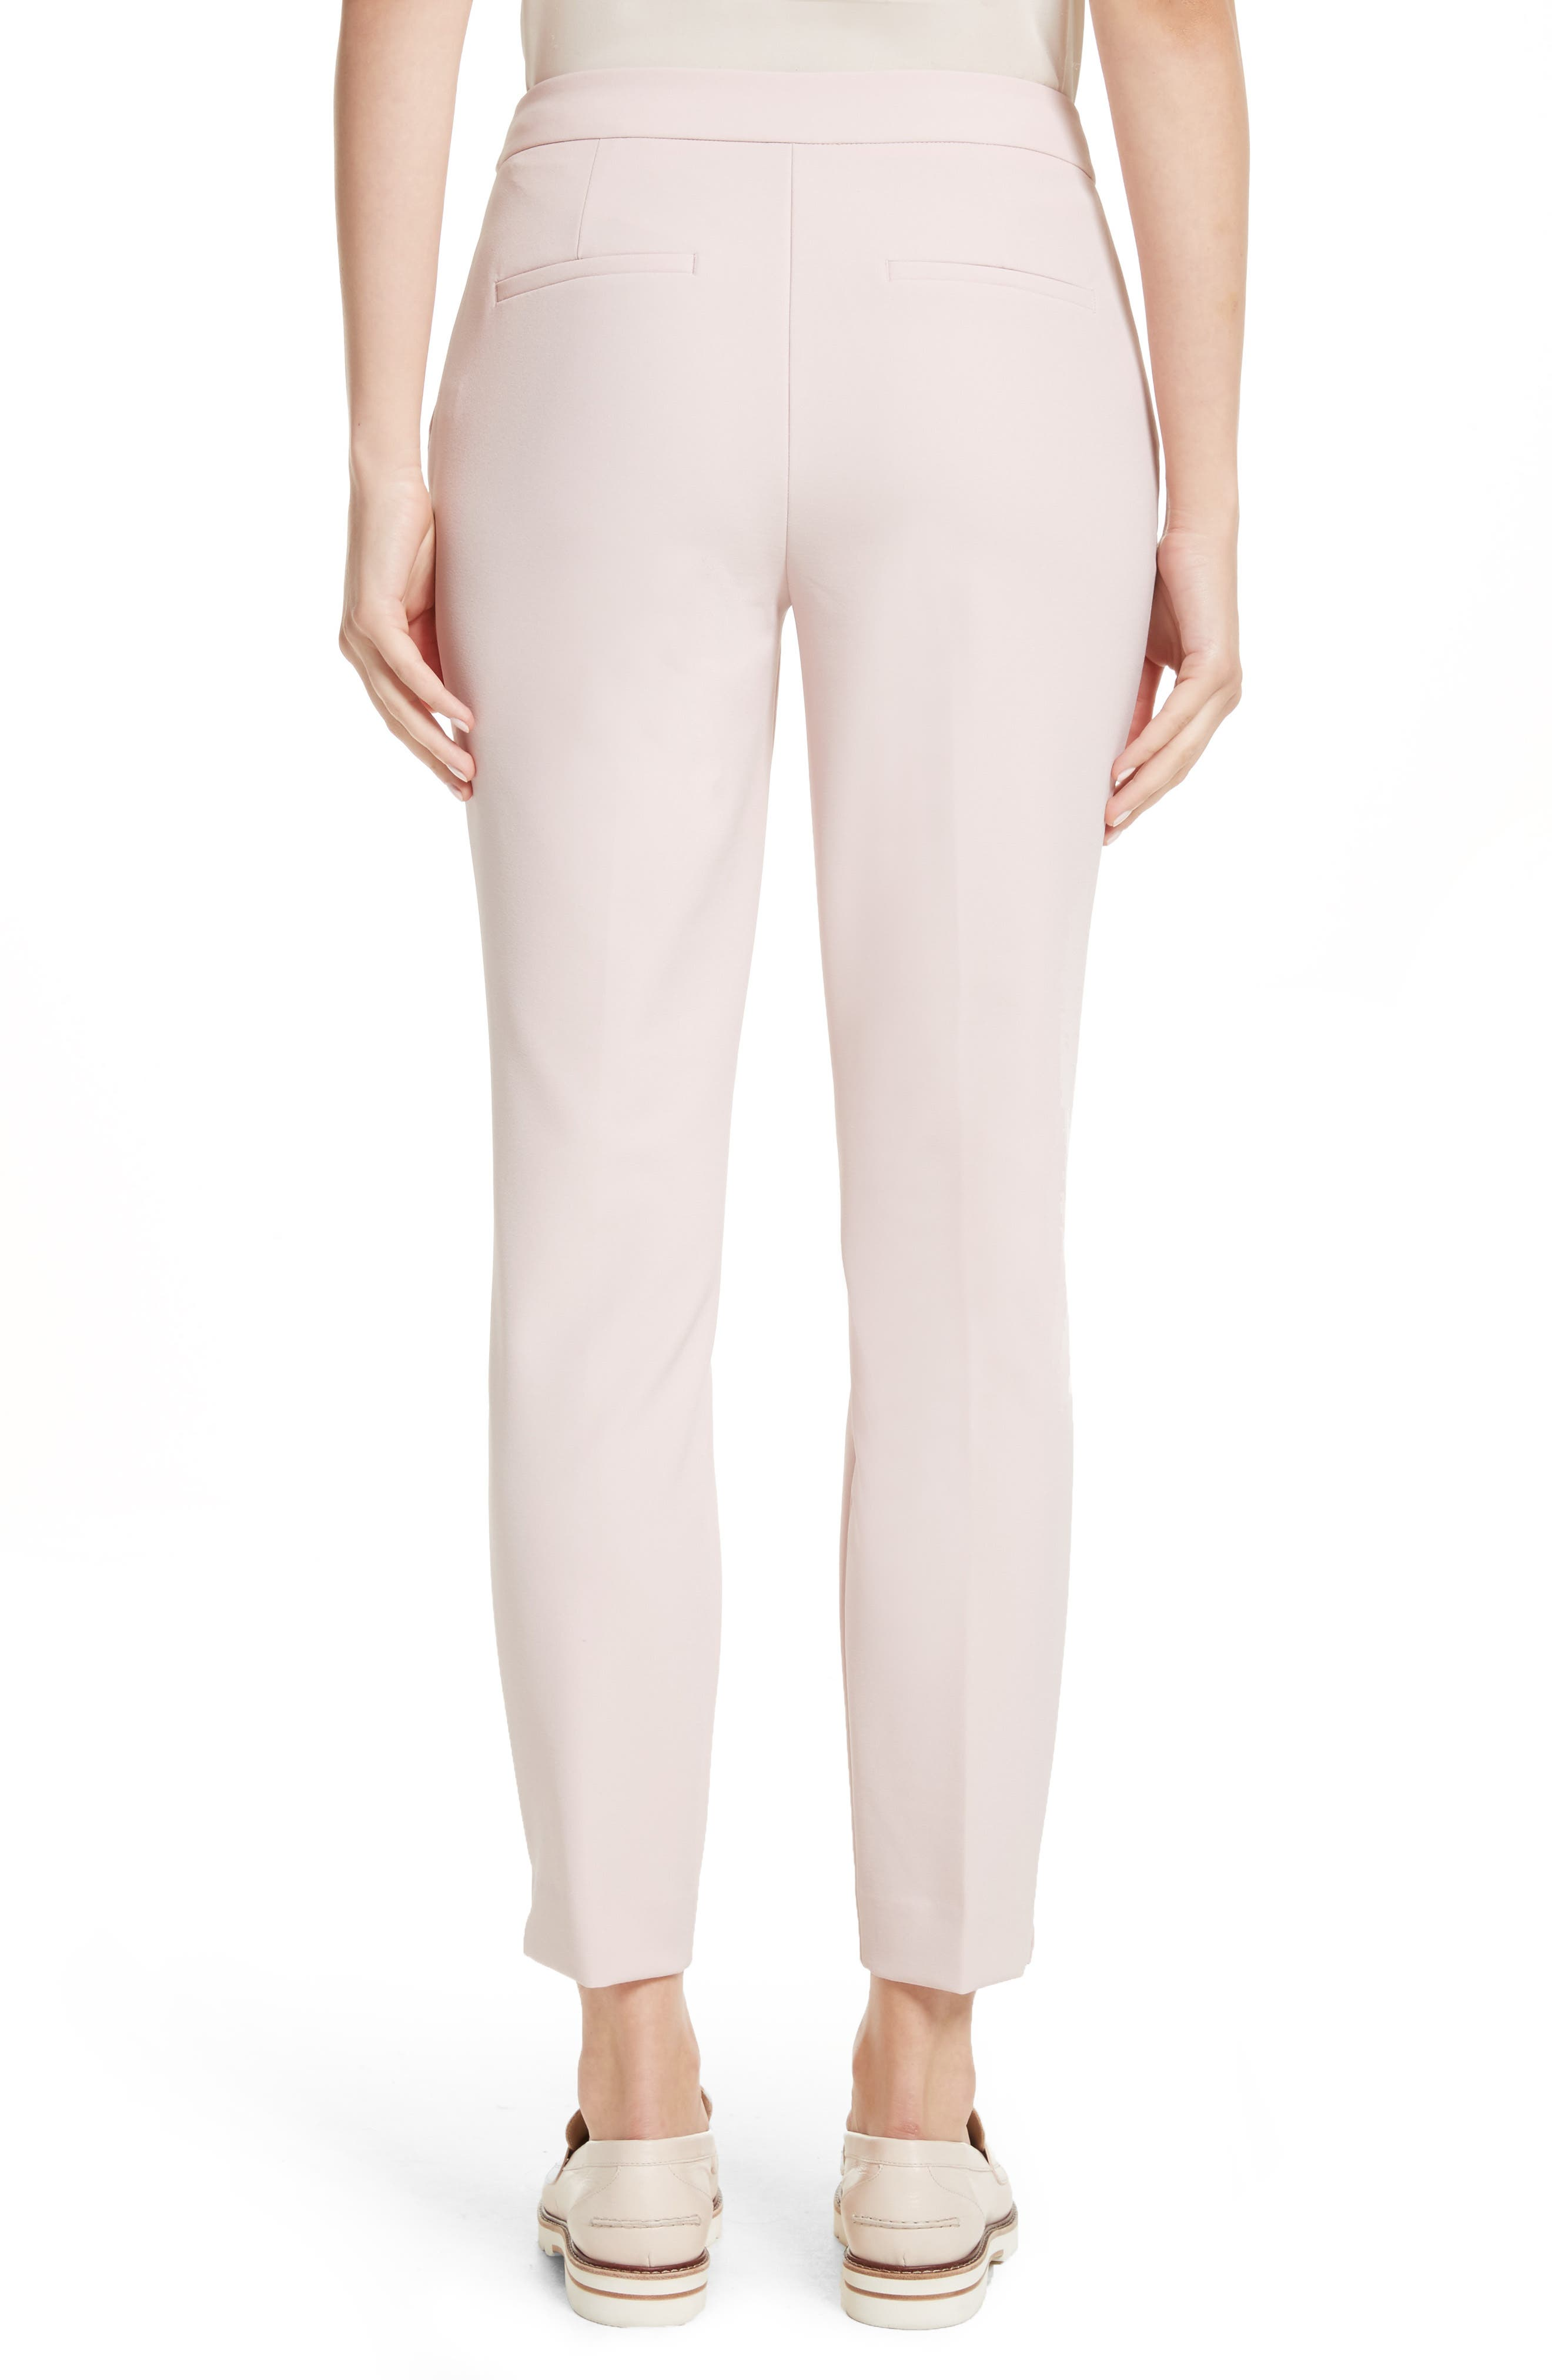 Suria Tailored Ankle Grazer Trousers,                             Alternate thumbnail 2, color,                             680